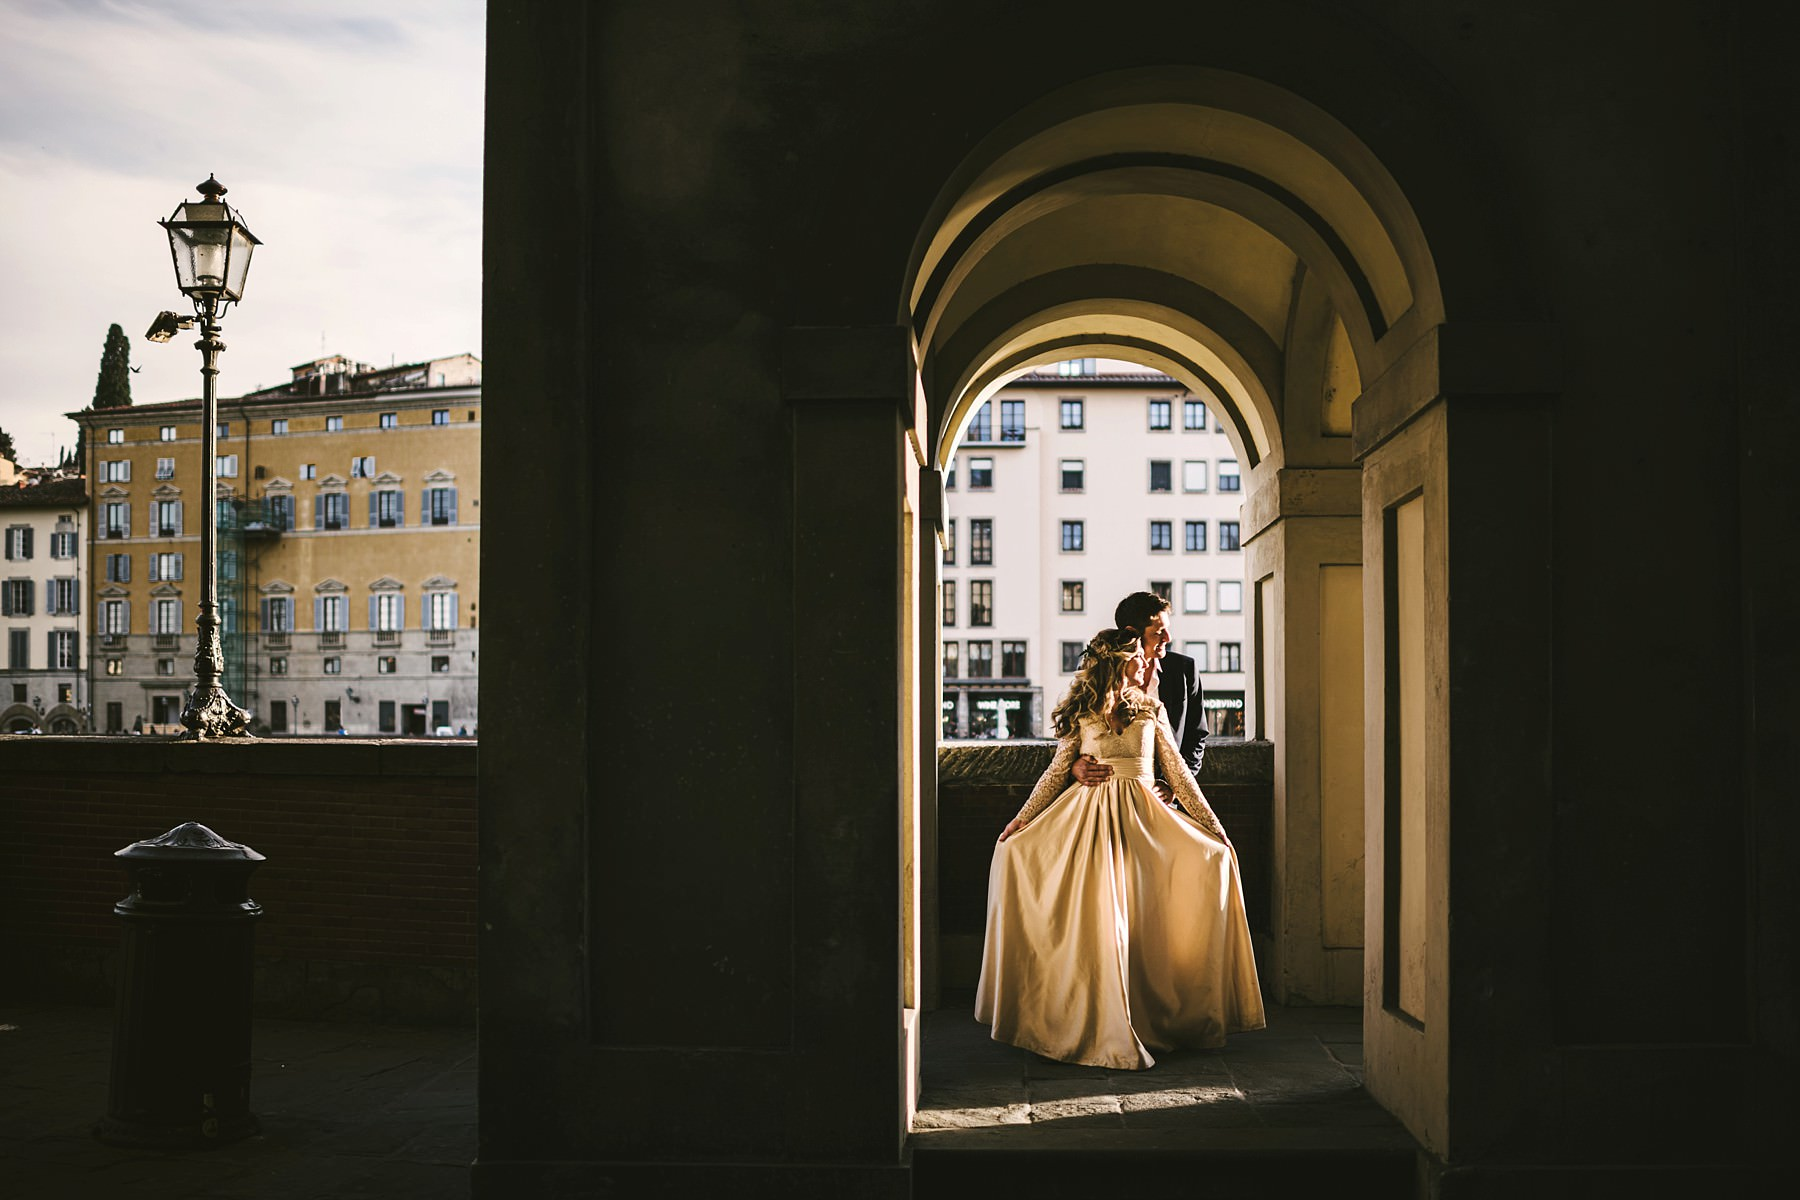 Dreamy, elegant and emotional vows renewal photos at Tornabuoni Tower, Florence with couple portrait photo session into the streets of the city near Ponte Vecchio and Uffizi Art Gallery